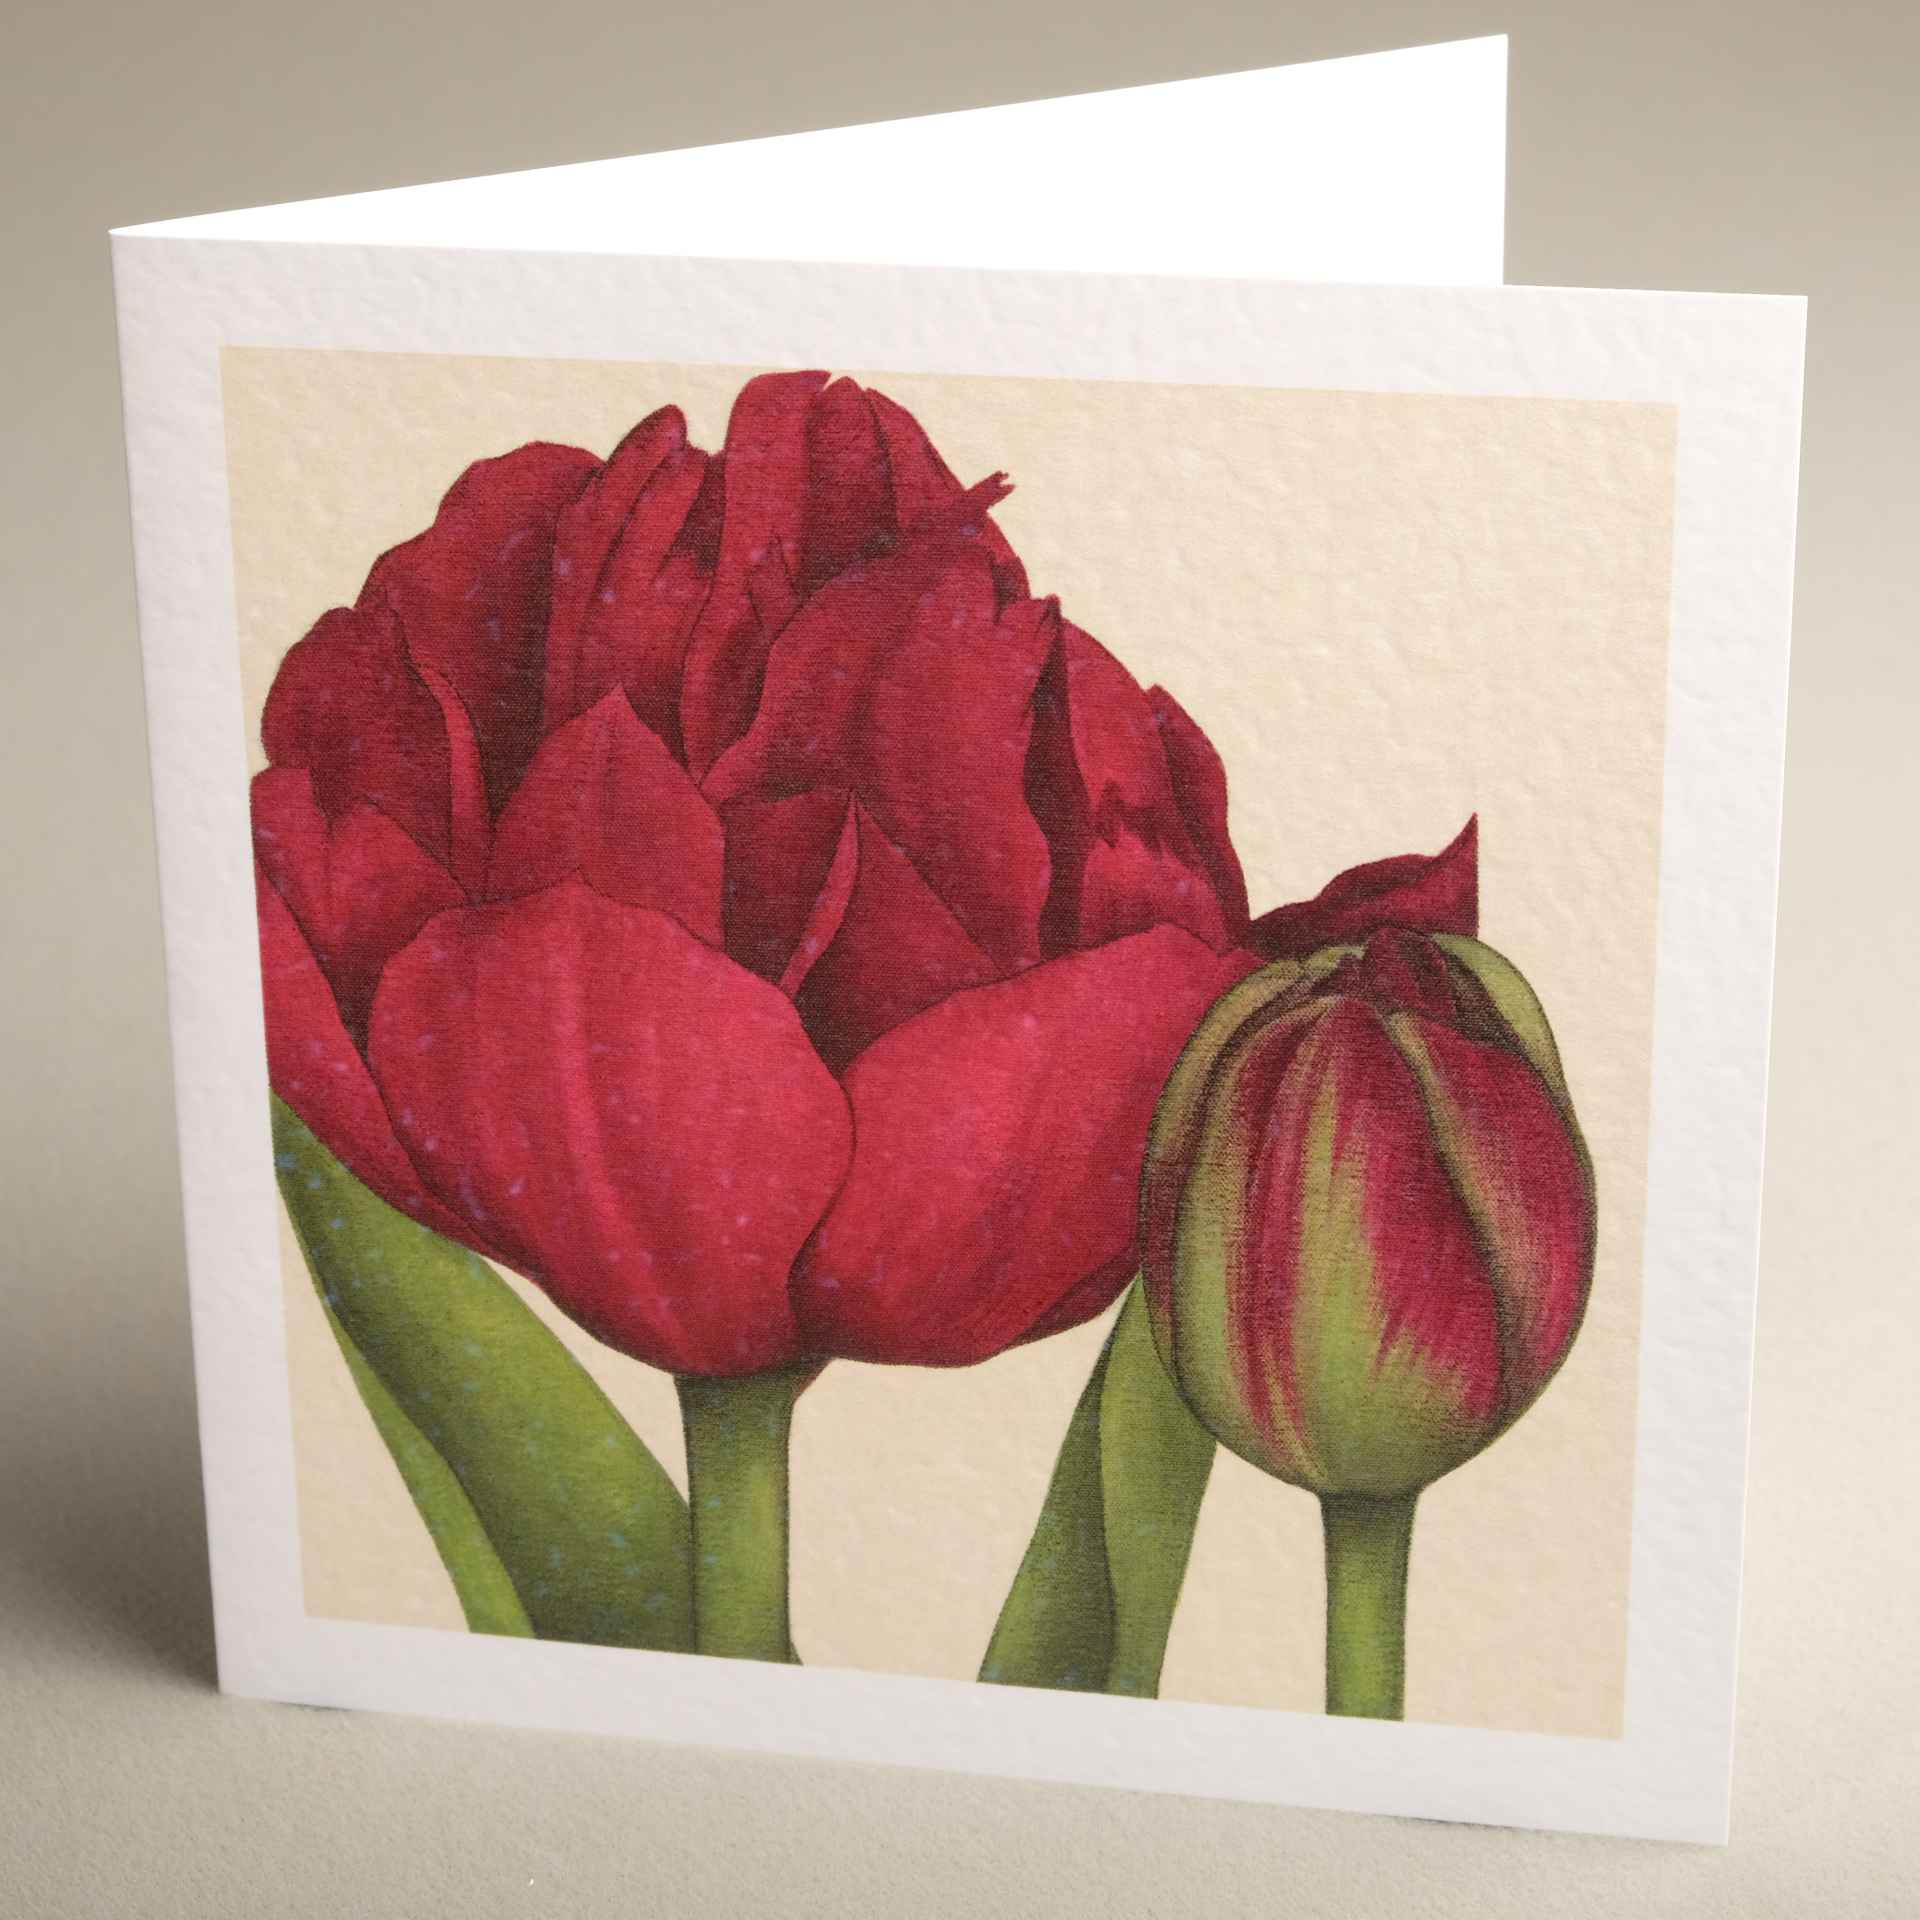 Floral greetings cards from jaci hogan art flower design greetings greetings cards burgundy uncle tom tulip textured 150x150 m4hsunfo